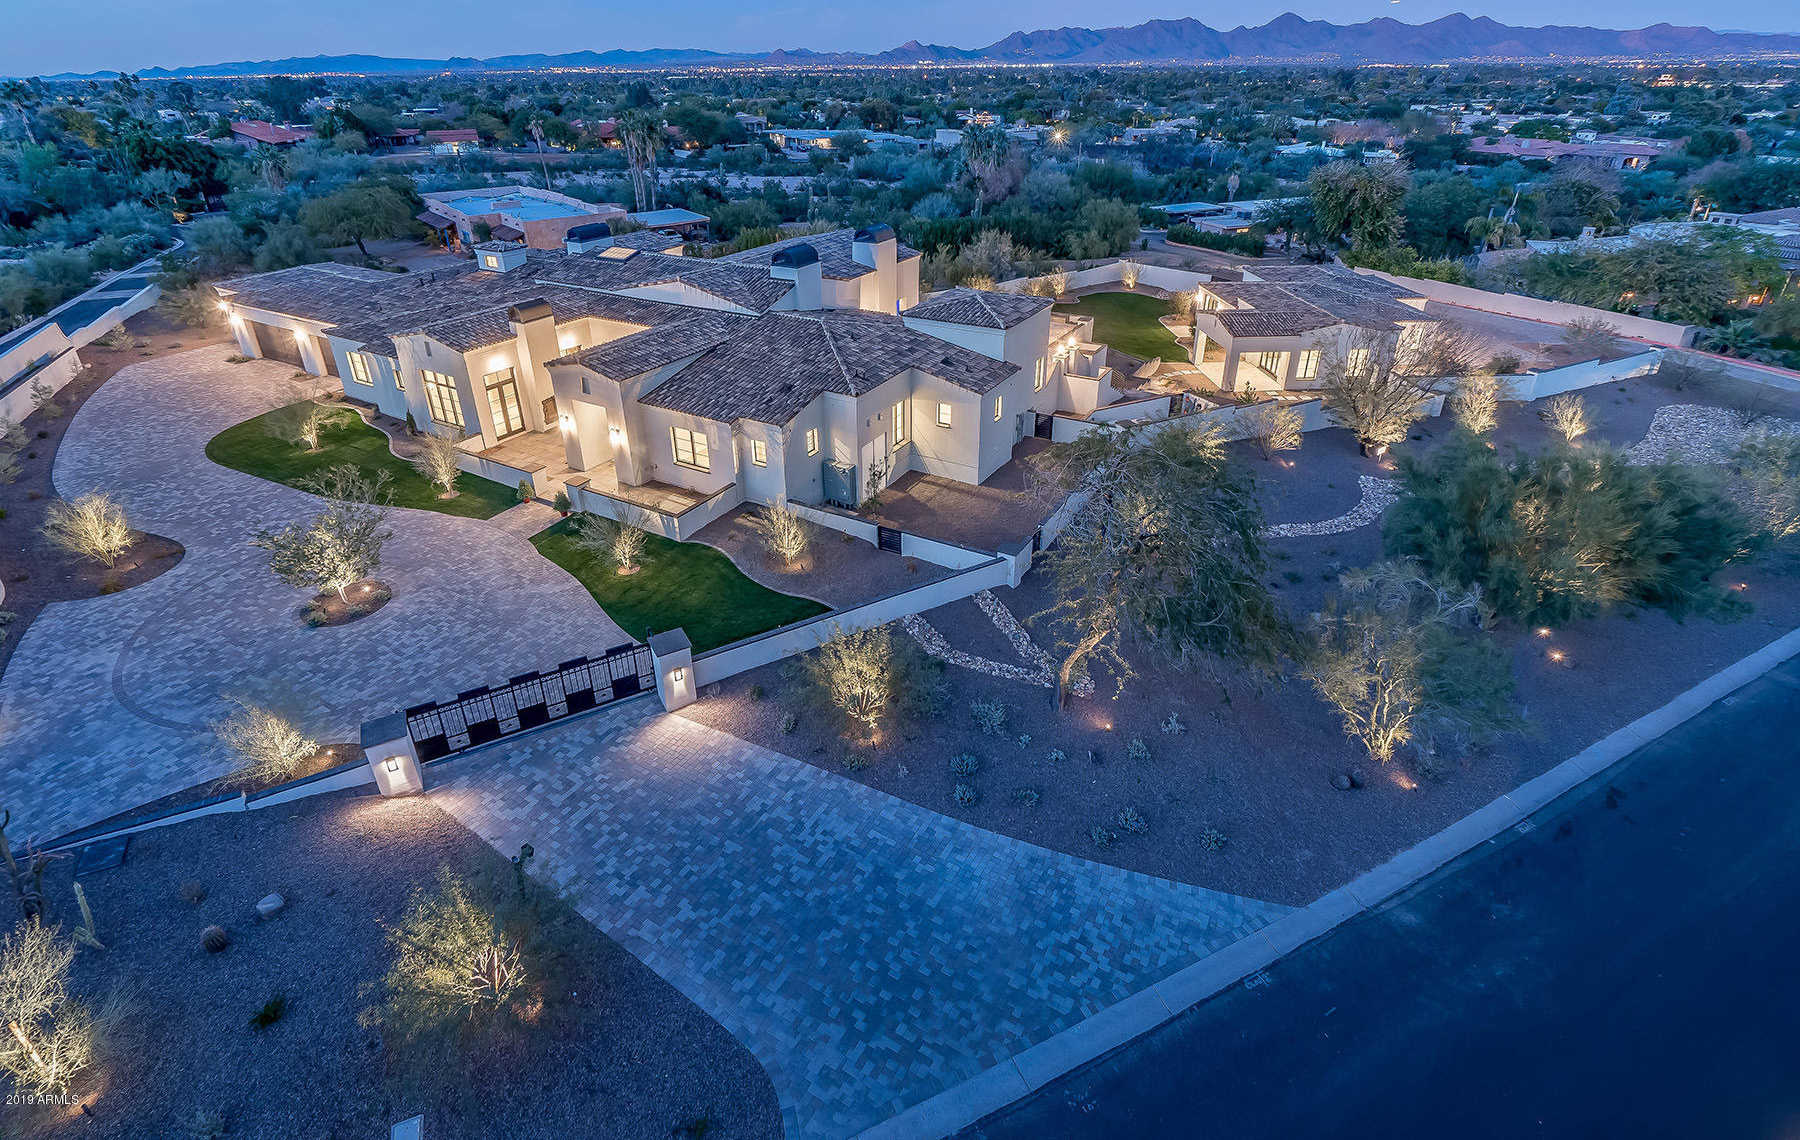 $6,500,000 - 5Br/6Ba - Home for Sale in N/a, Paradise Valley